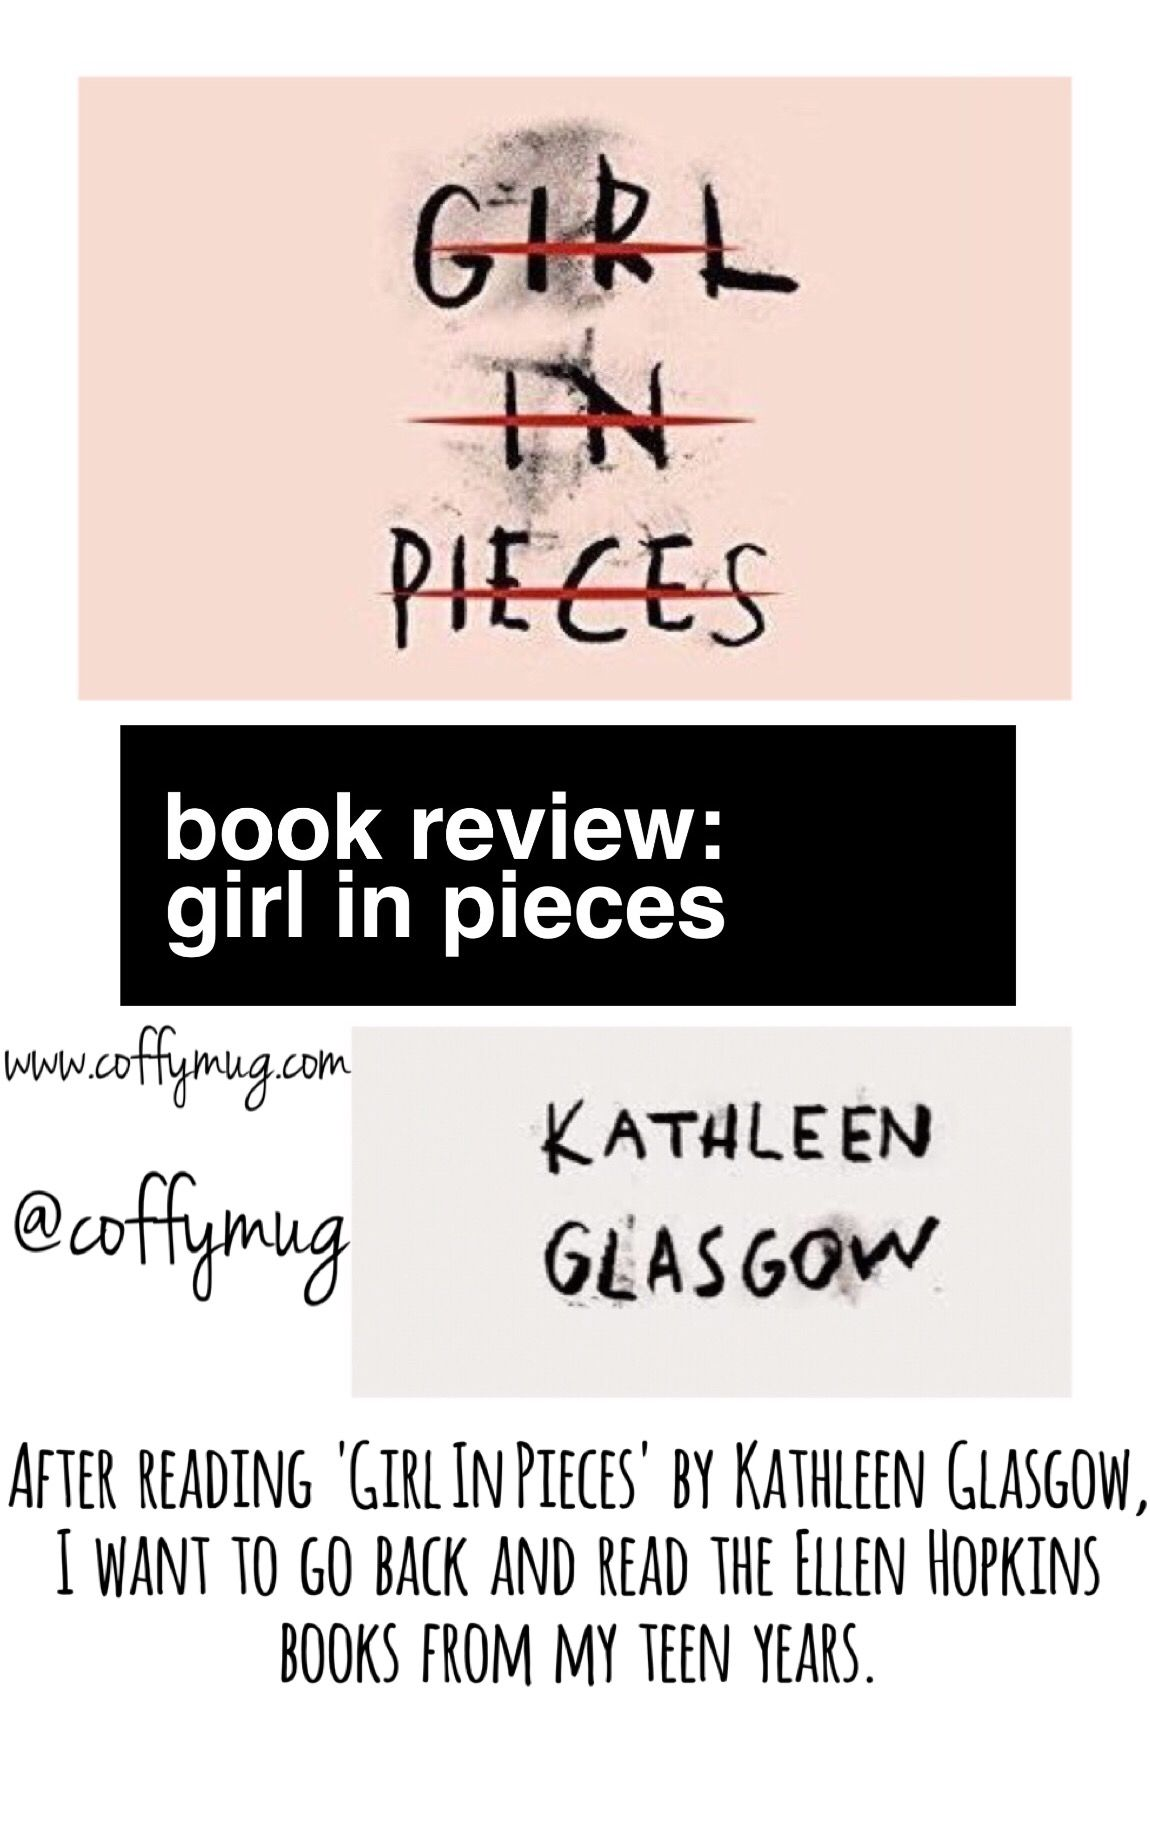 Book Review of Girl In Pieces: After reading Girl In Pieces by Kathleen Glasgow, I want to go back and read the Ellen Hopkins books from my teen years. This novel is a beautifully, upsetting story of a young girl who is struggling to just live.The novel is divided into three parts and is told entirely from Charlie's point of view. #bookreview #coffymug #girlinpieces #kathleenglasgow